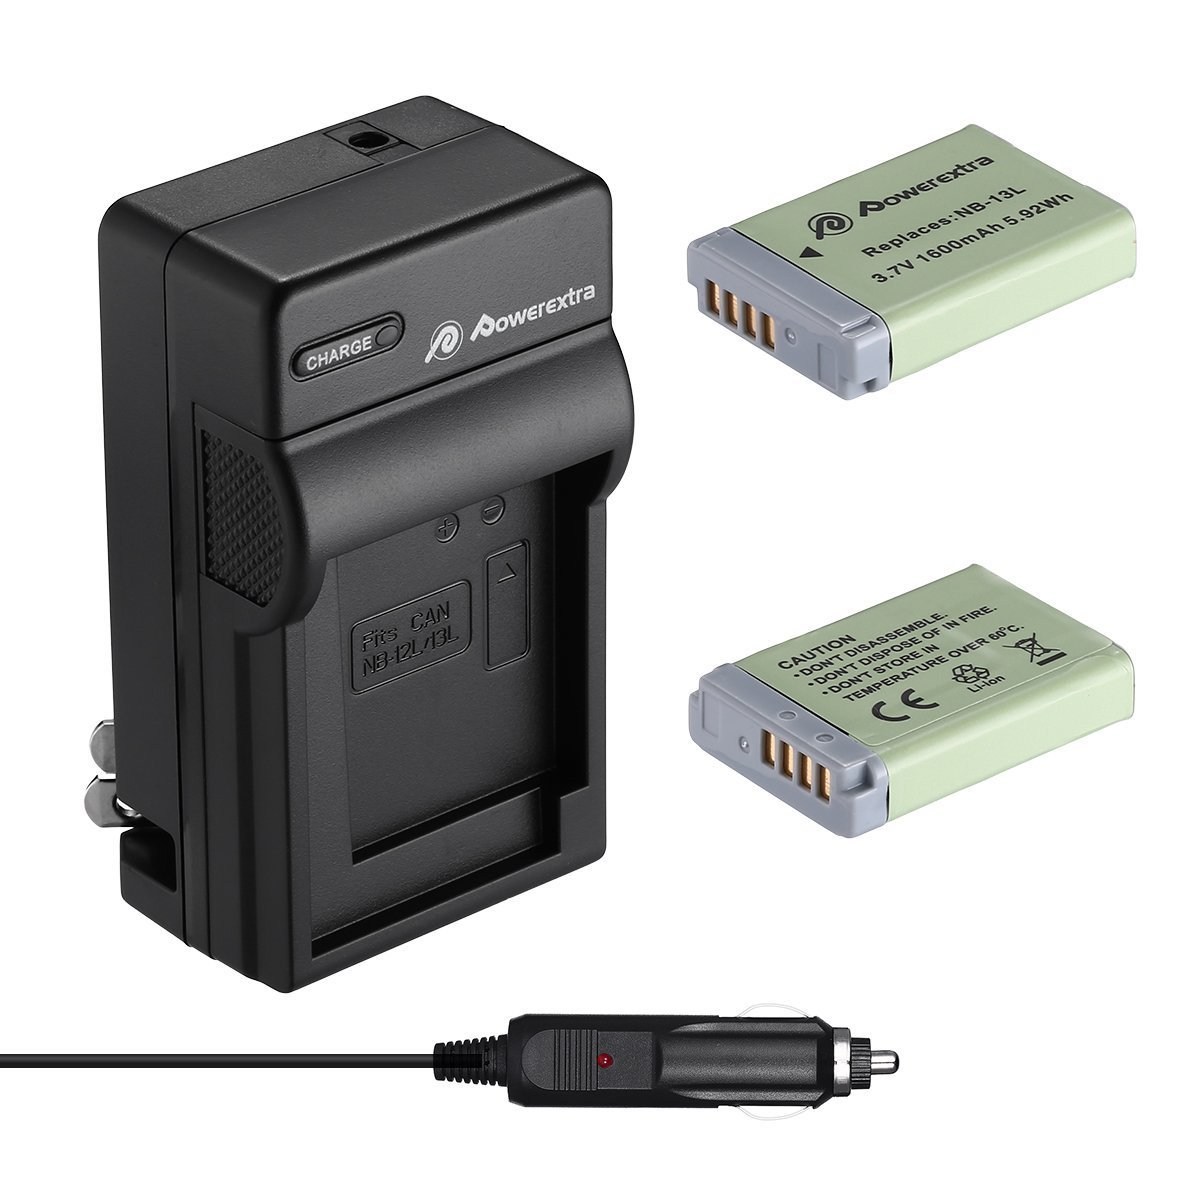 Powerextra 2 Pack Replacement Canon NB-13L Battery and Travel Charger Compatible with Canon PowerShot G5 X, G7 X, G7 X Mark II, G9 X, G9 X Mark II, SX620 HS, SX720 HS, SX730 HS Digital Camera